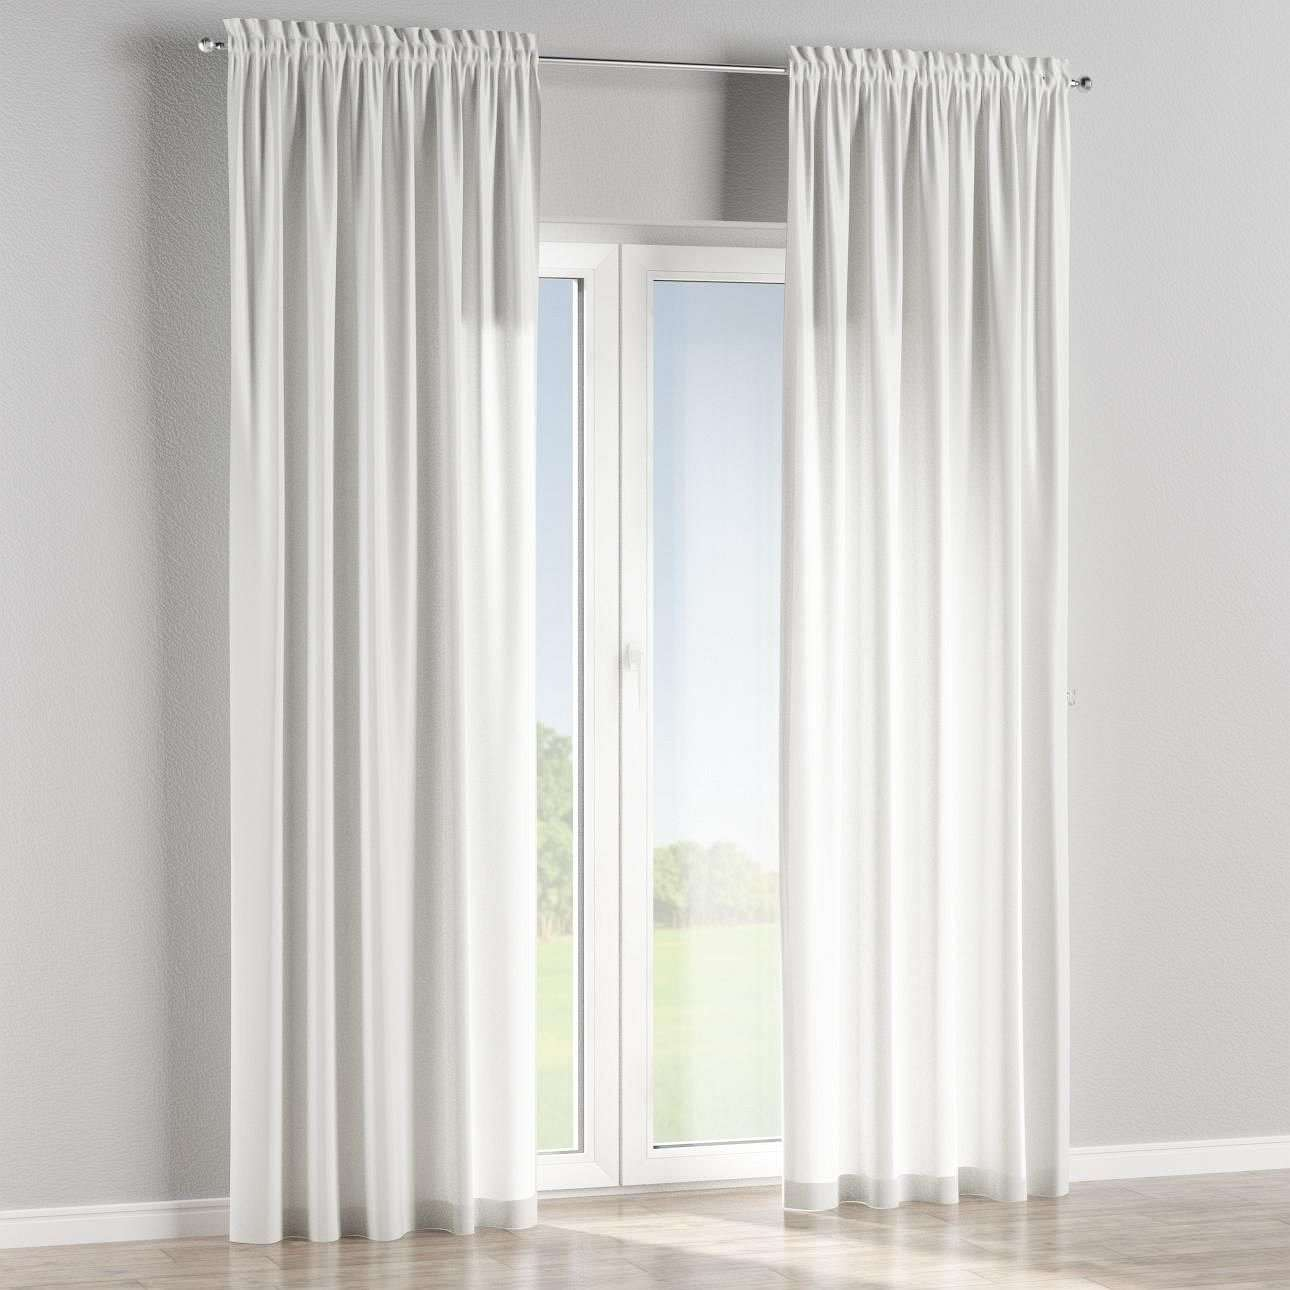 Slot and frill curtains in collection Norge, fabric: 140-96